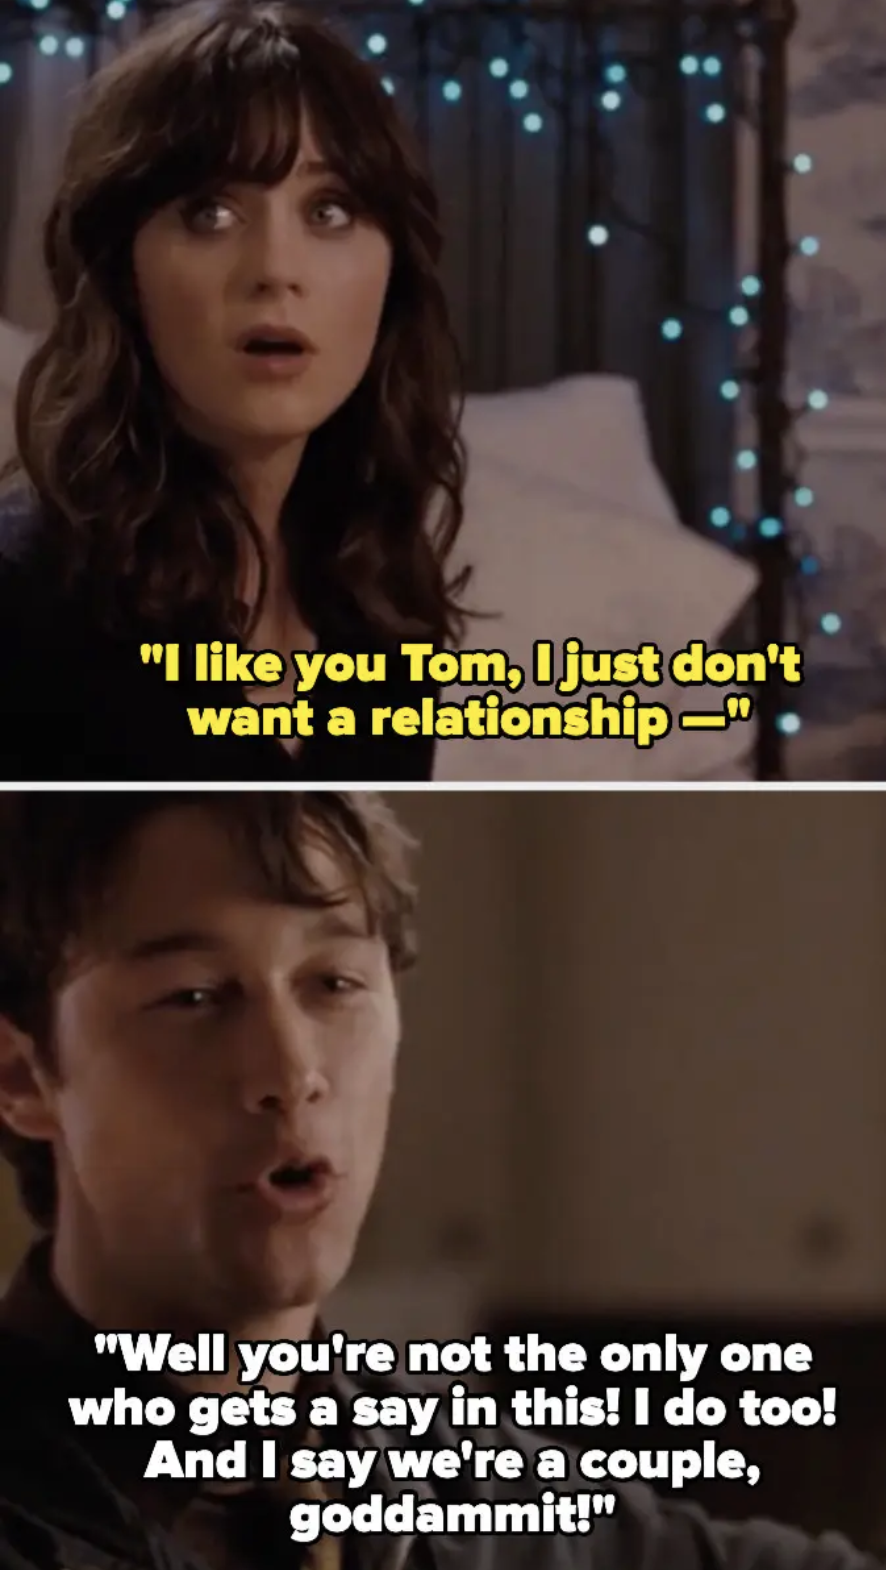 Argument scene from 500 Days of Summer